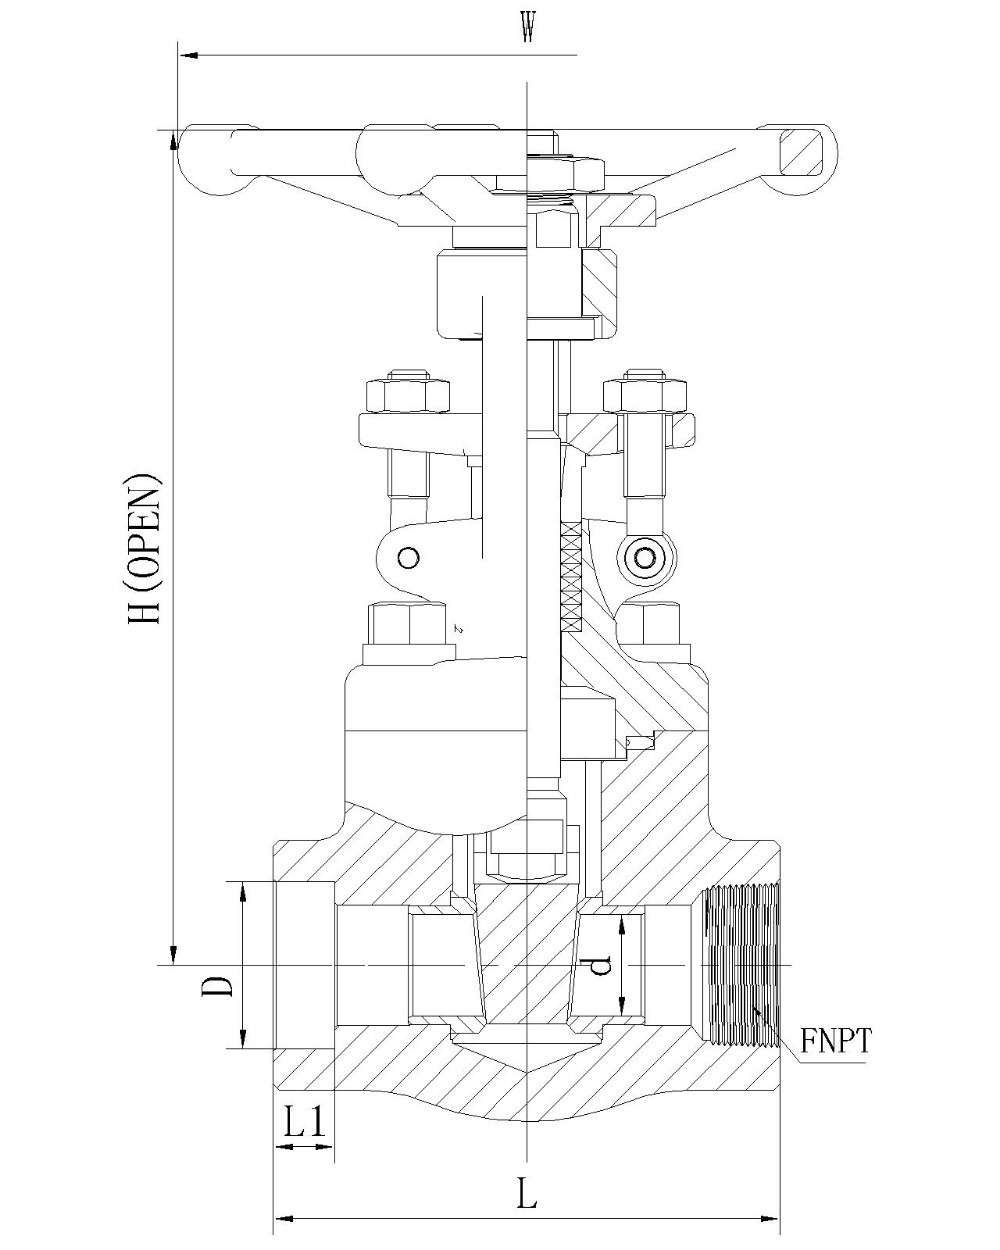 Gate valve anatomy image buy forged steel valveindustrial valve gate valve anatomy image pooptronica Images